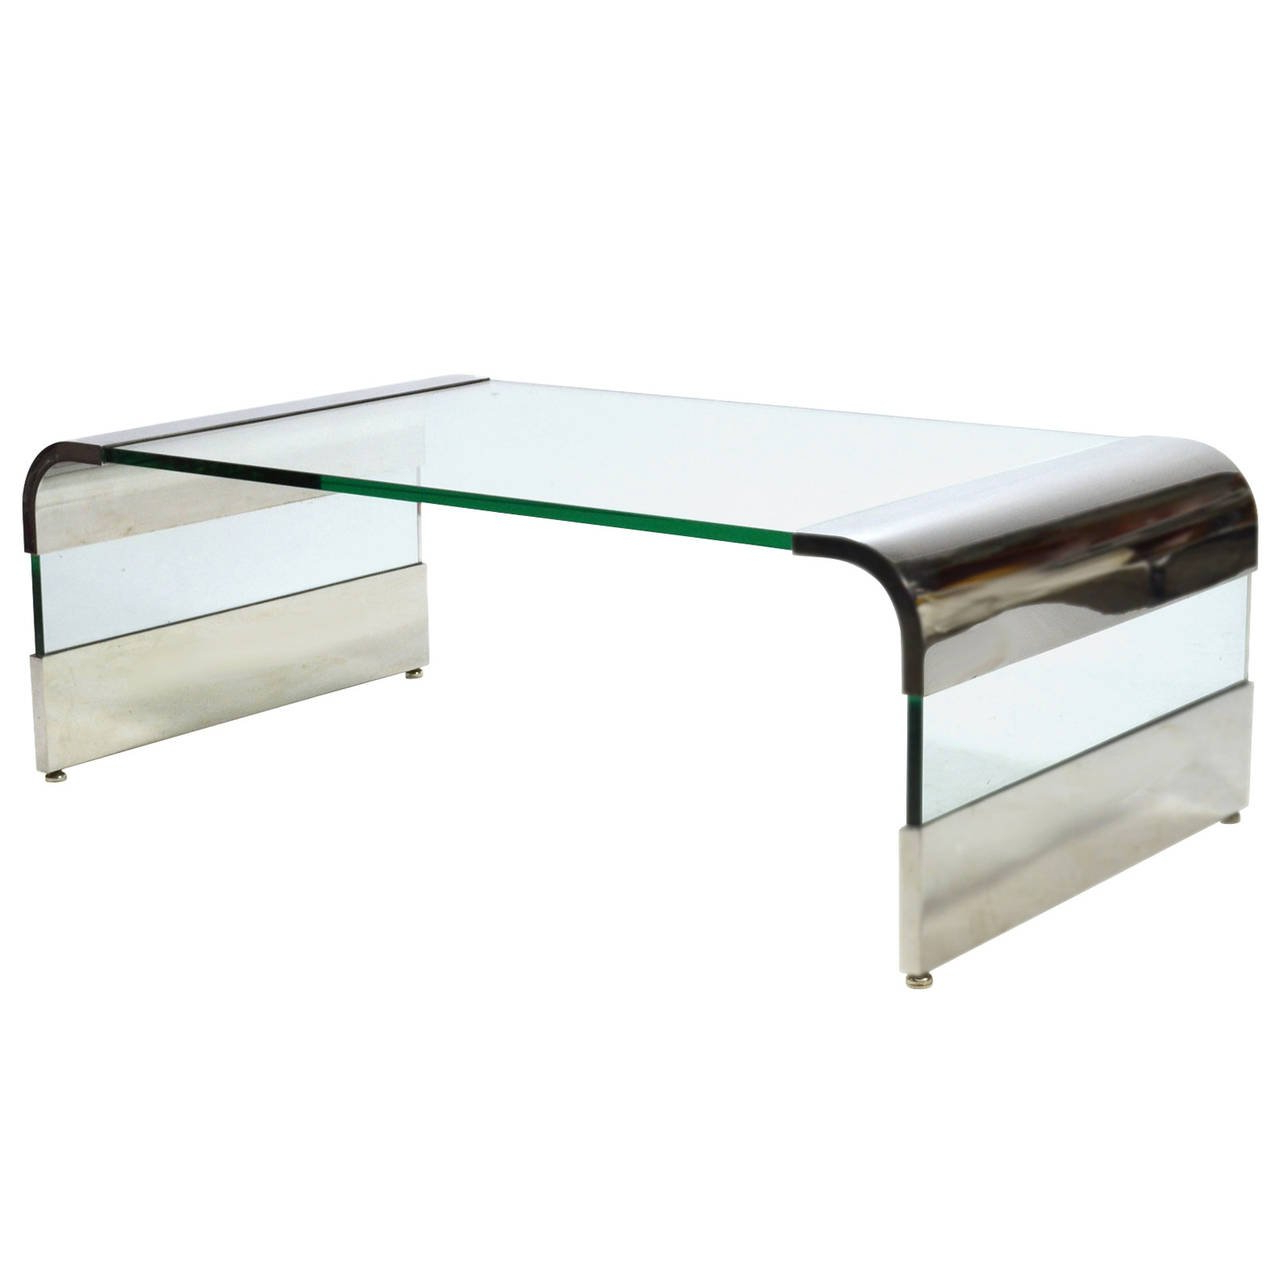 Leon Rosen Chrome And Glass Waterfall Coffee Tablepace For Sale Intended For Widely Used Waterfall Coffee Tables (View 4 of 20)